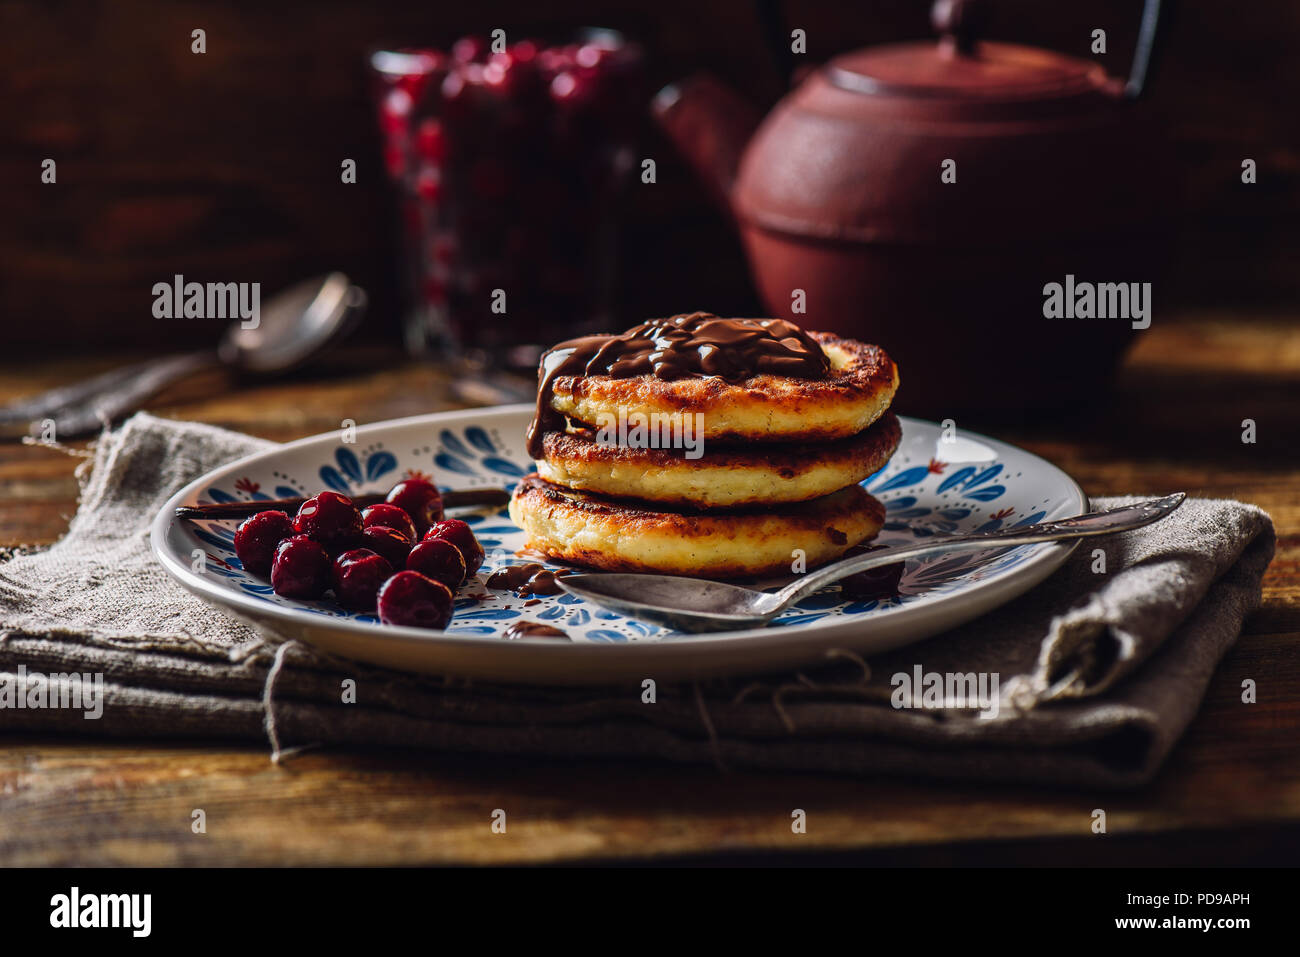 Breakfast with Quark Pancakes with Chocolate Paste and Frozen Cherry. Tea Pot with Spoons and Glass of Berries on Background. - Stock Image